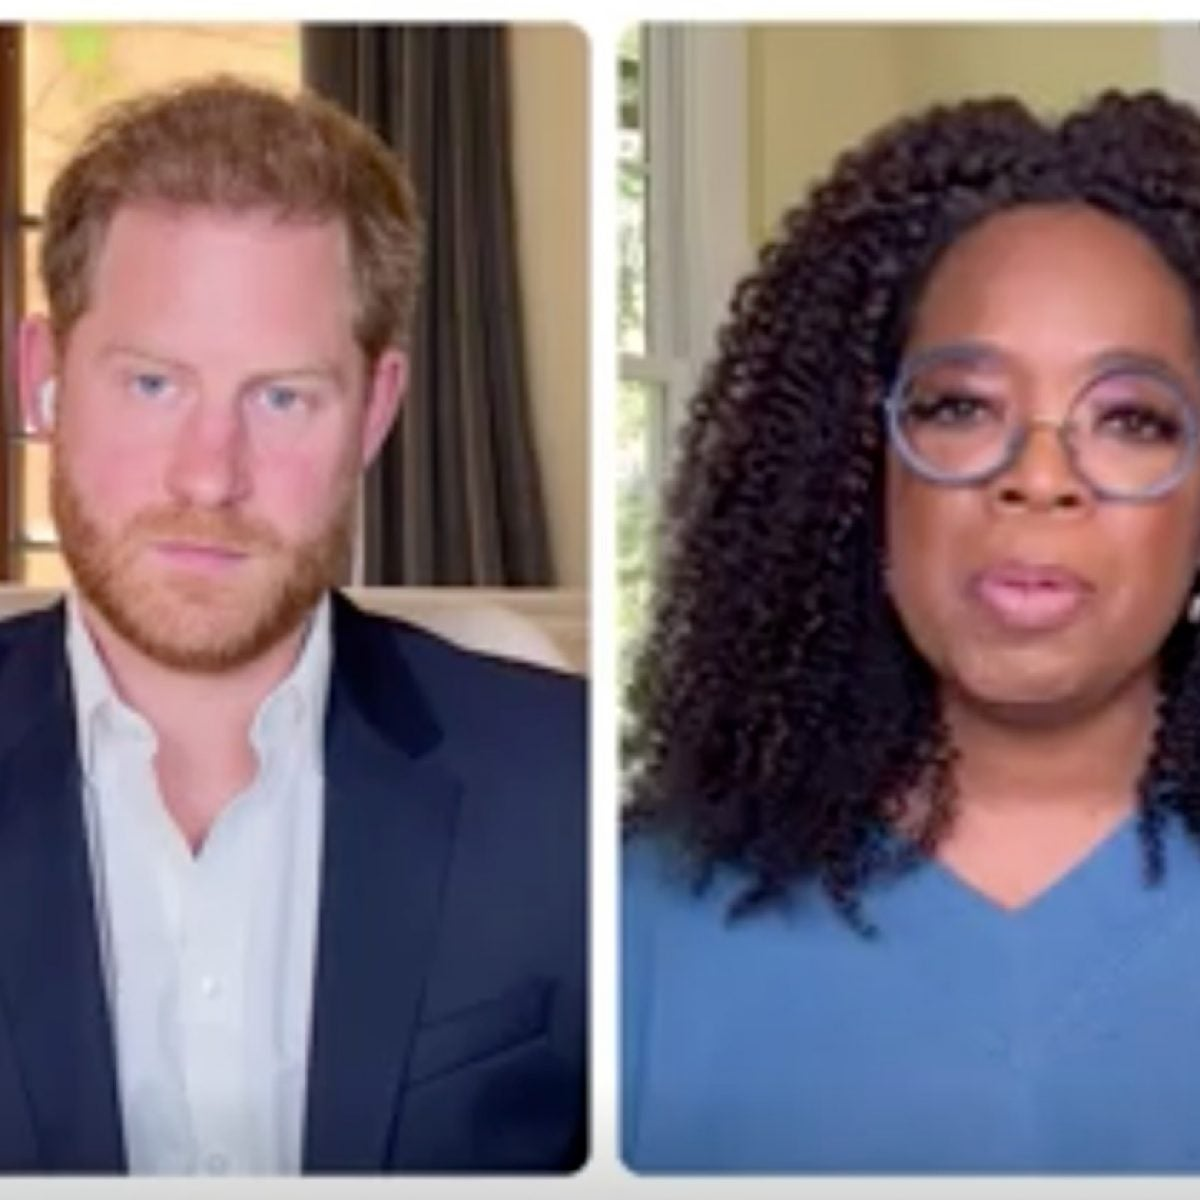 Oprah Winfrey and Prince Harry's Touching Advice For Those Who Don't Feel Seen